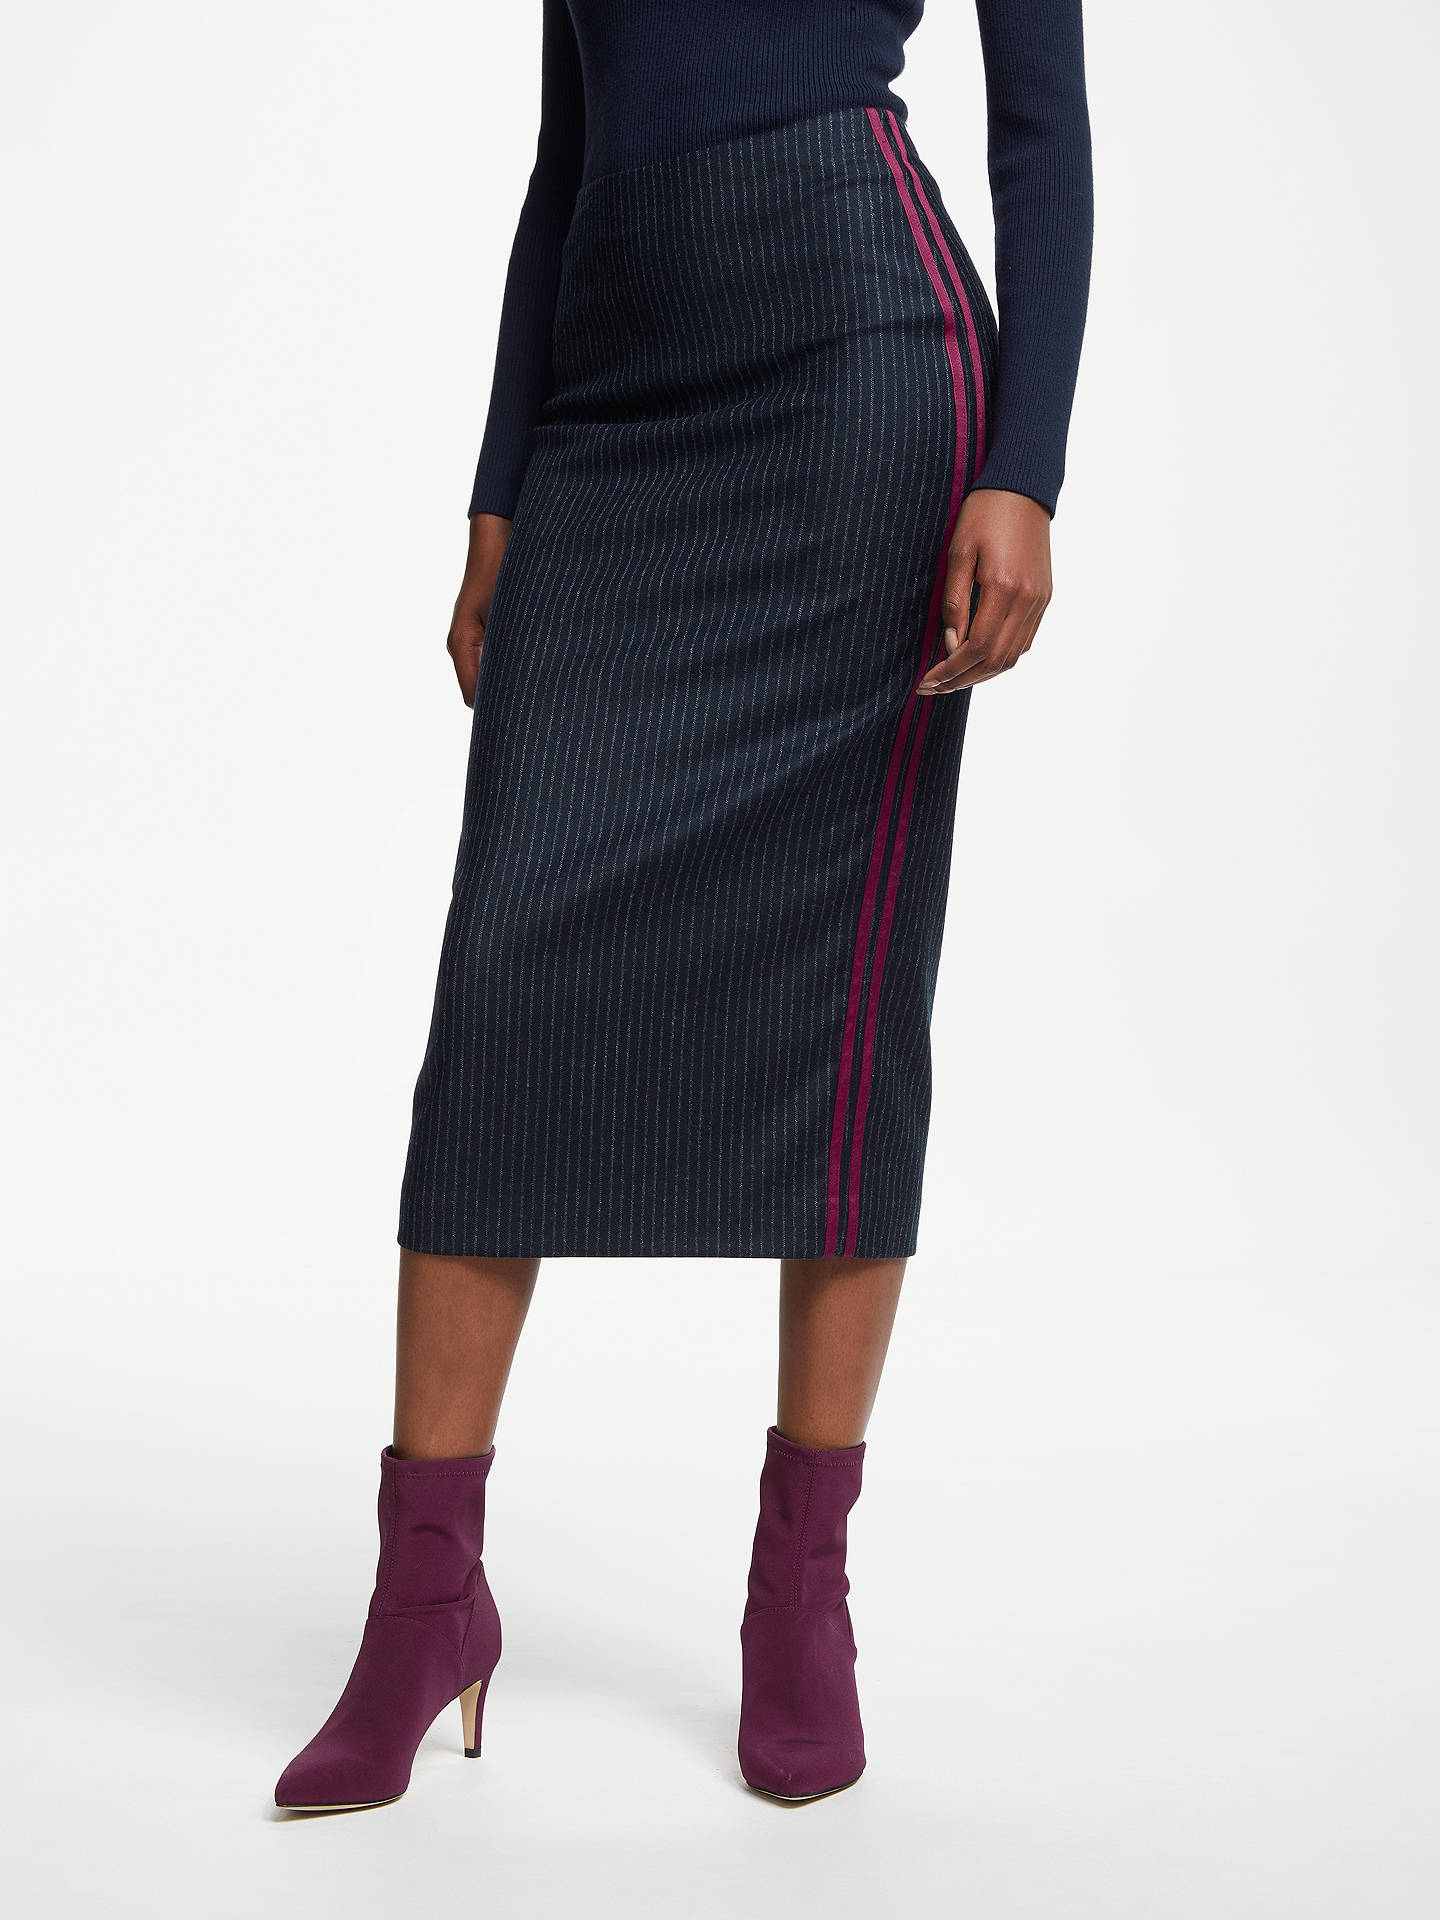 f78d0899f1 View All Women's Skirts. Previous Image Next Image. Buy Boden Cresswell  Pinstripe Skirt, Navy, 8 Online at johnlewis.com ...